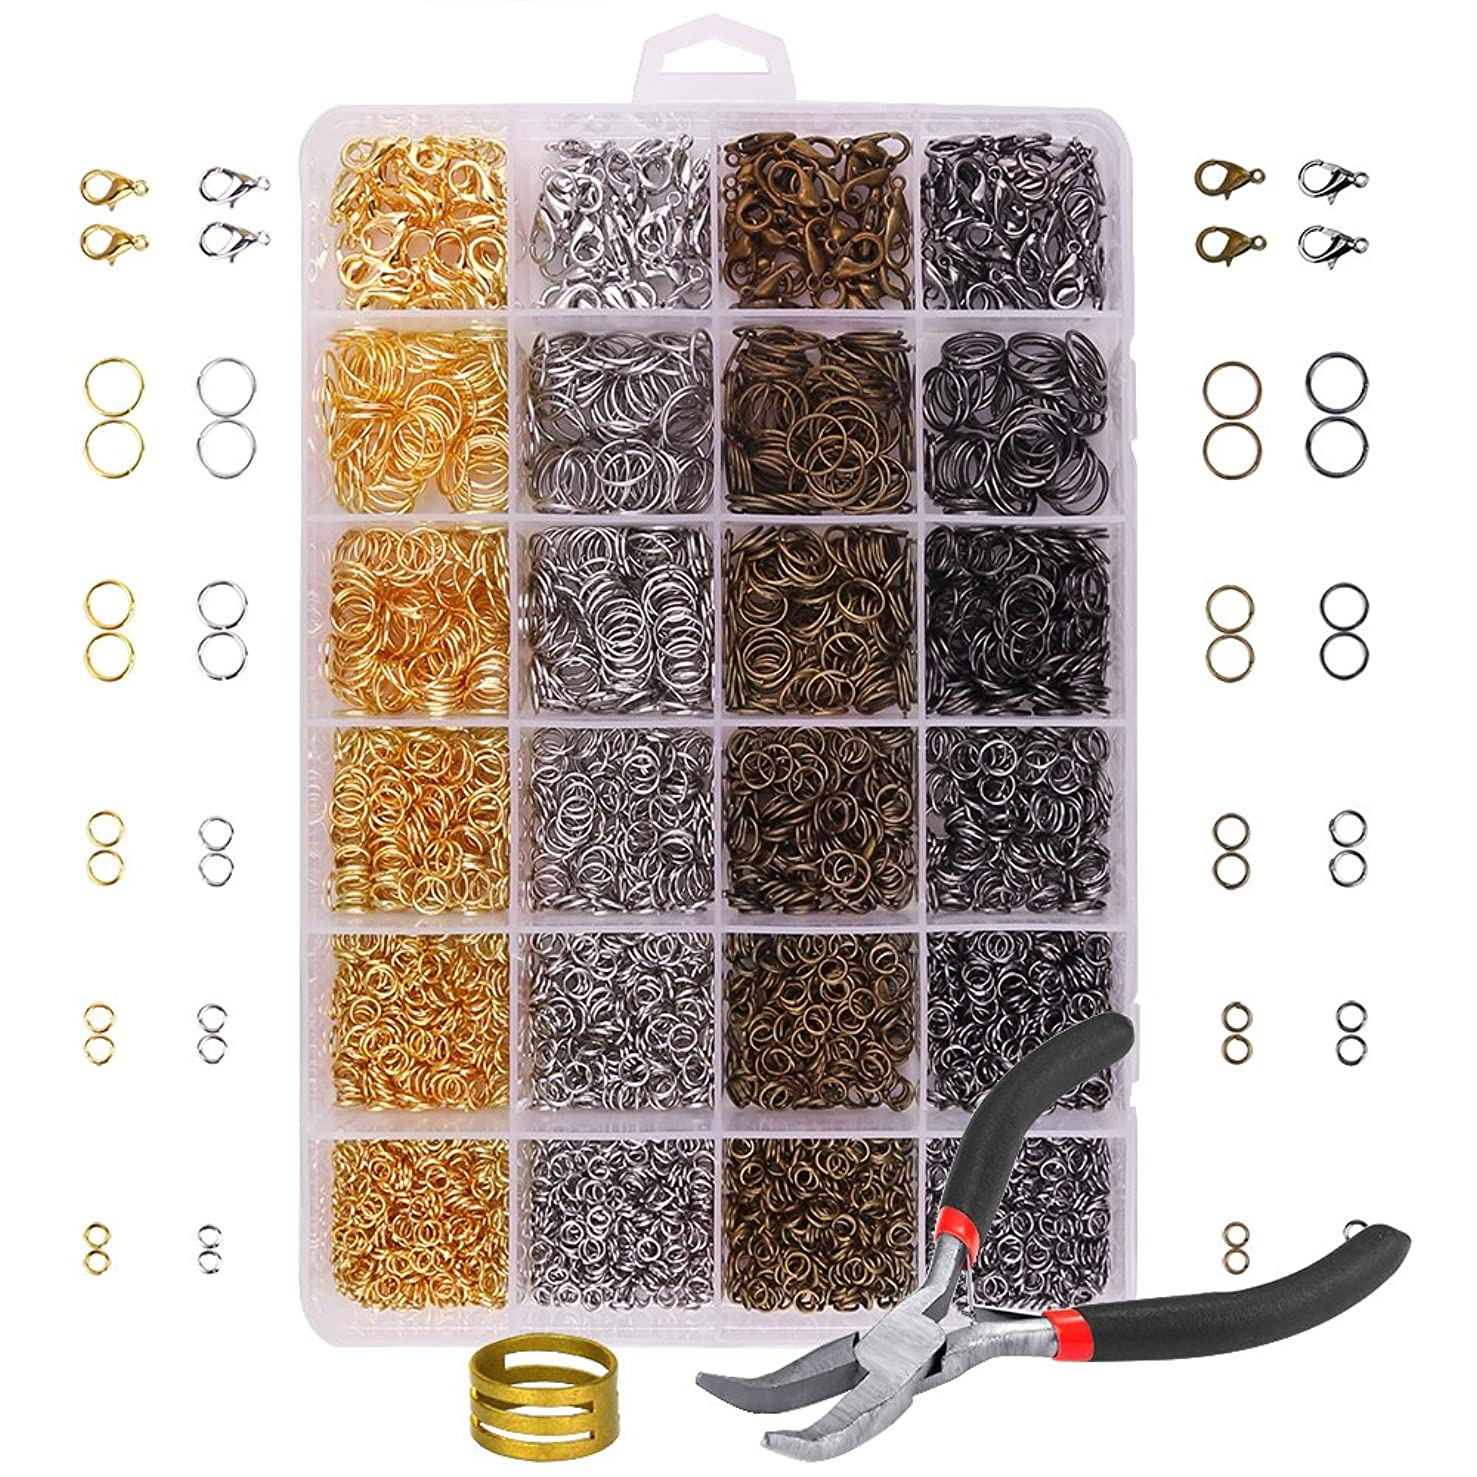 OPount?3142 Pieces Jewelry Making Kit with Open Jump Rings, Lobster Clasps, Open Ring, Bent Chain Plier